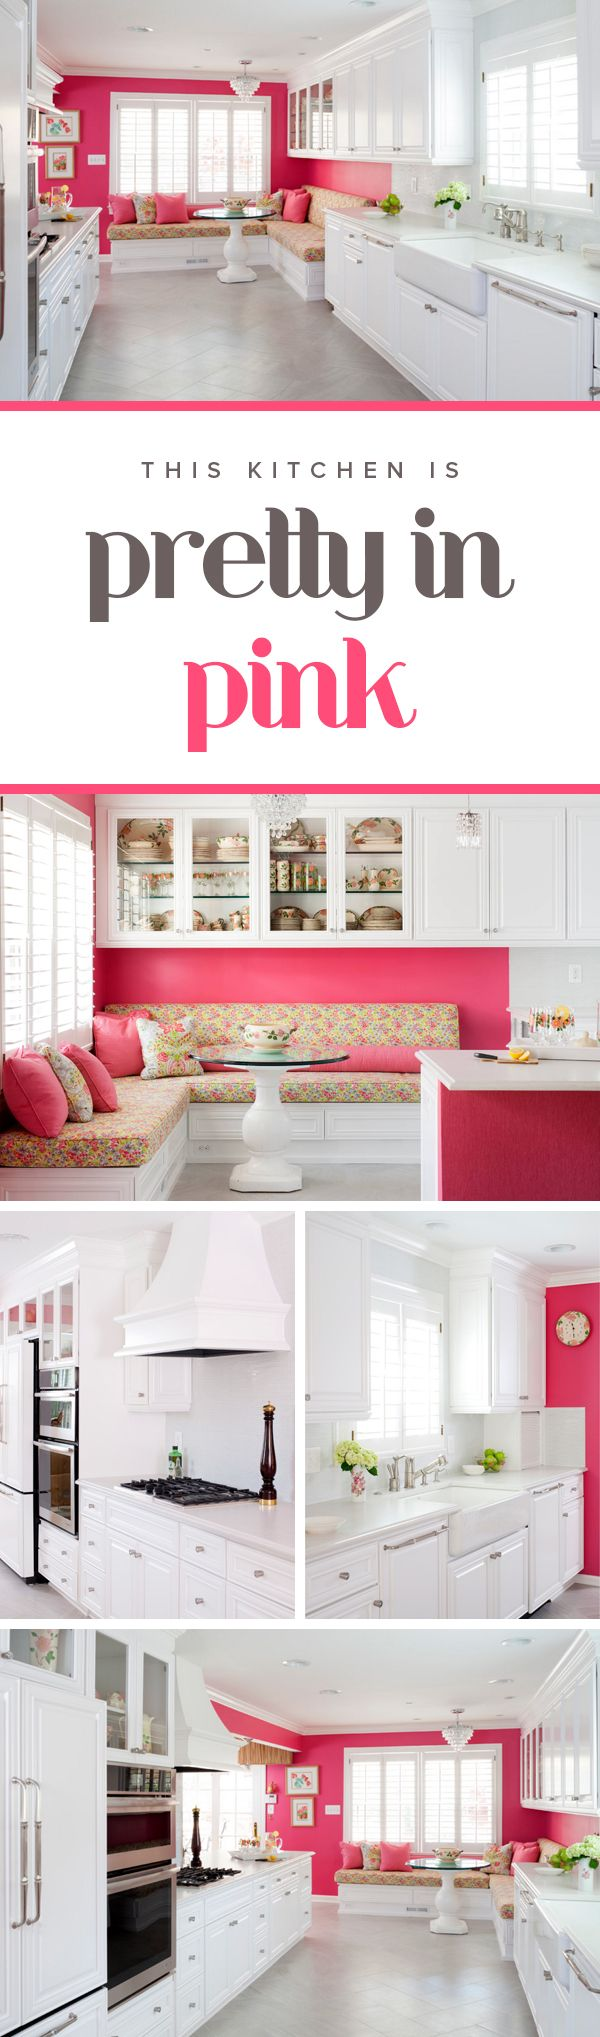 Pink Kitchen Cabinets 25+ best pink kitchen cupboards ideas on pinterest | pink kitchens